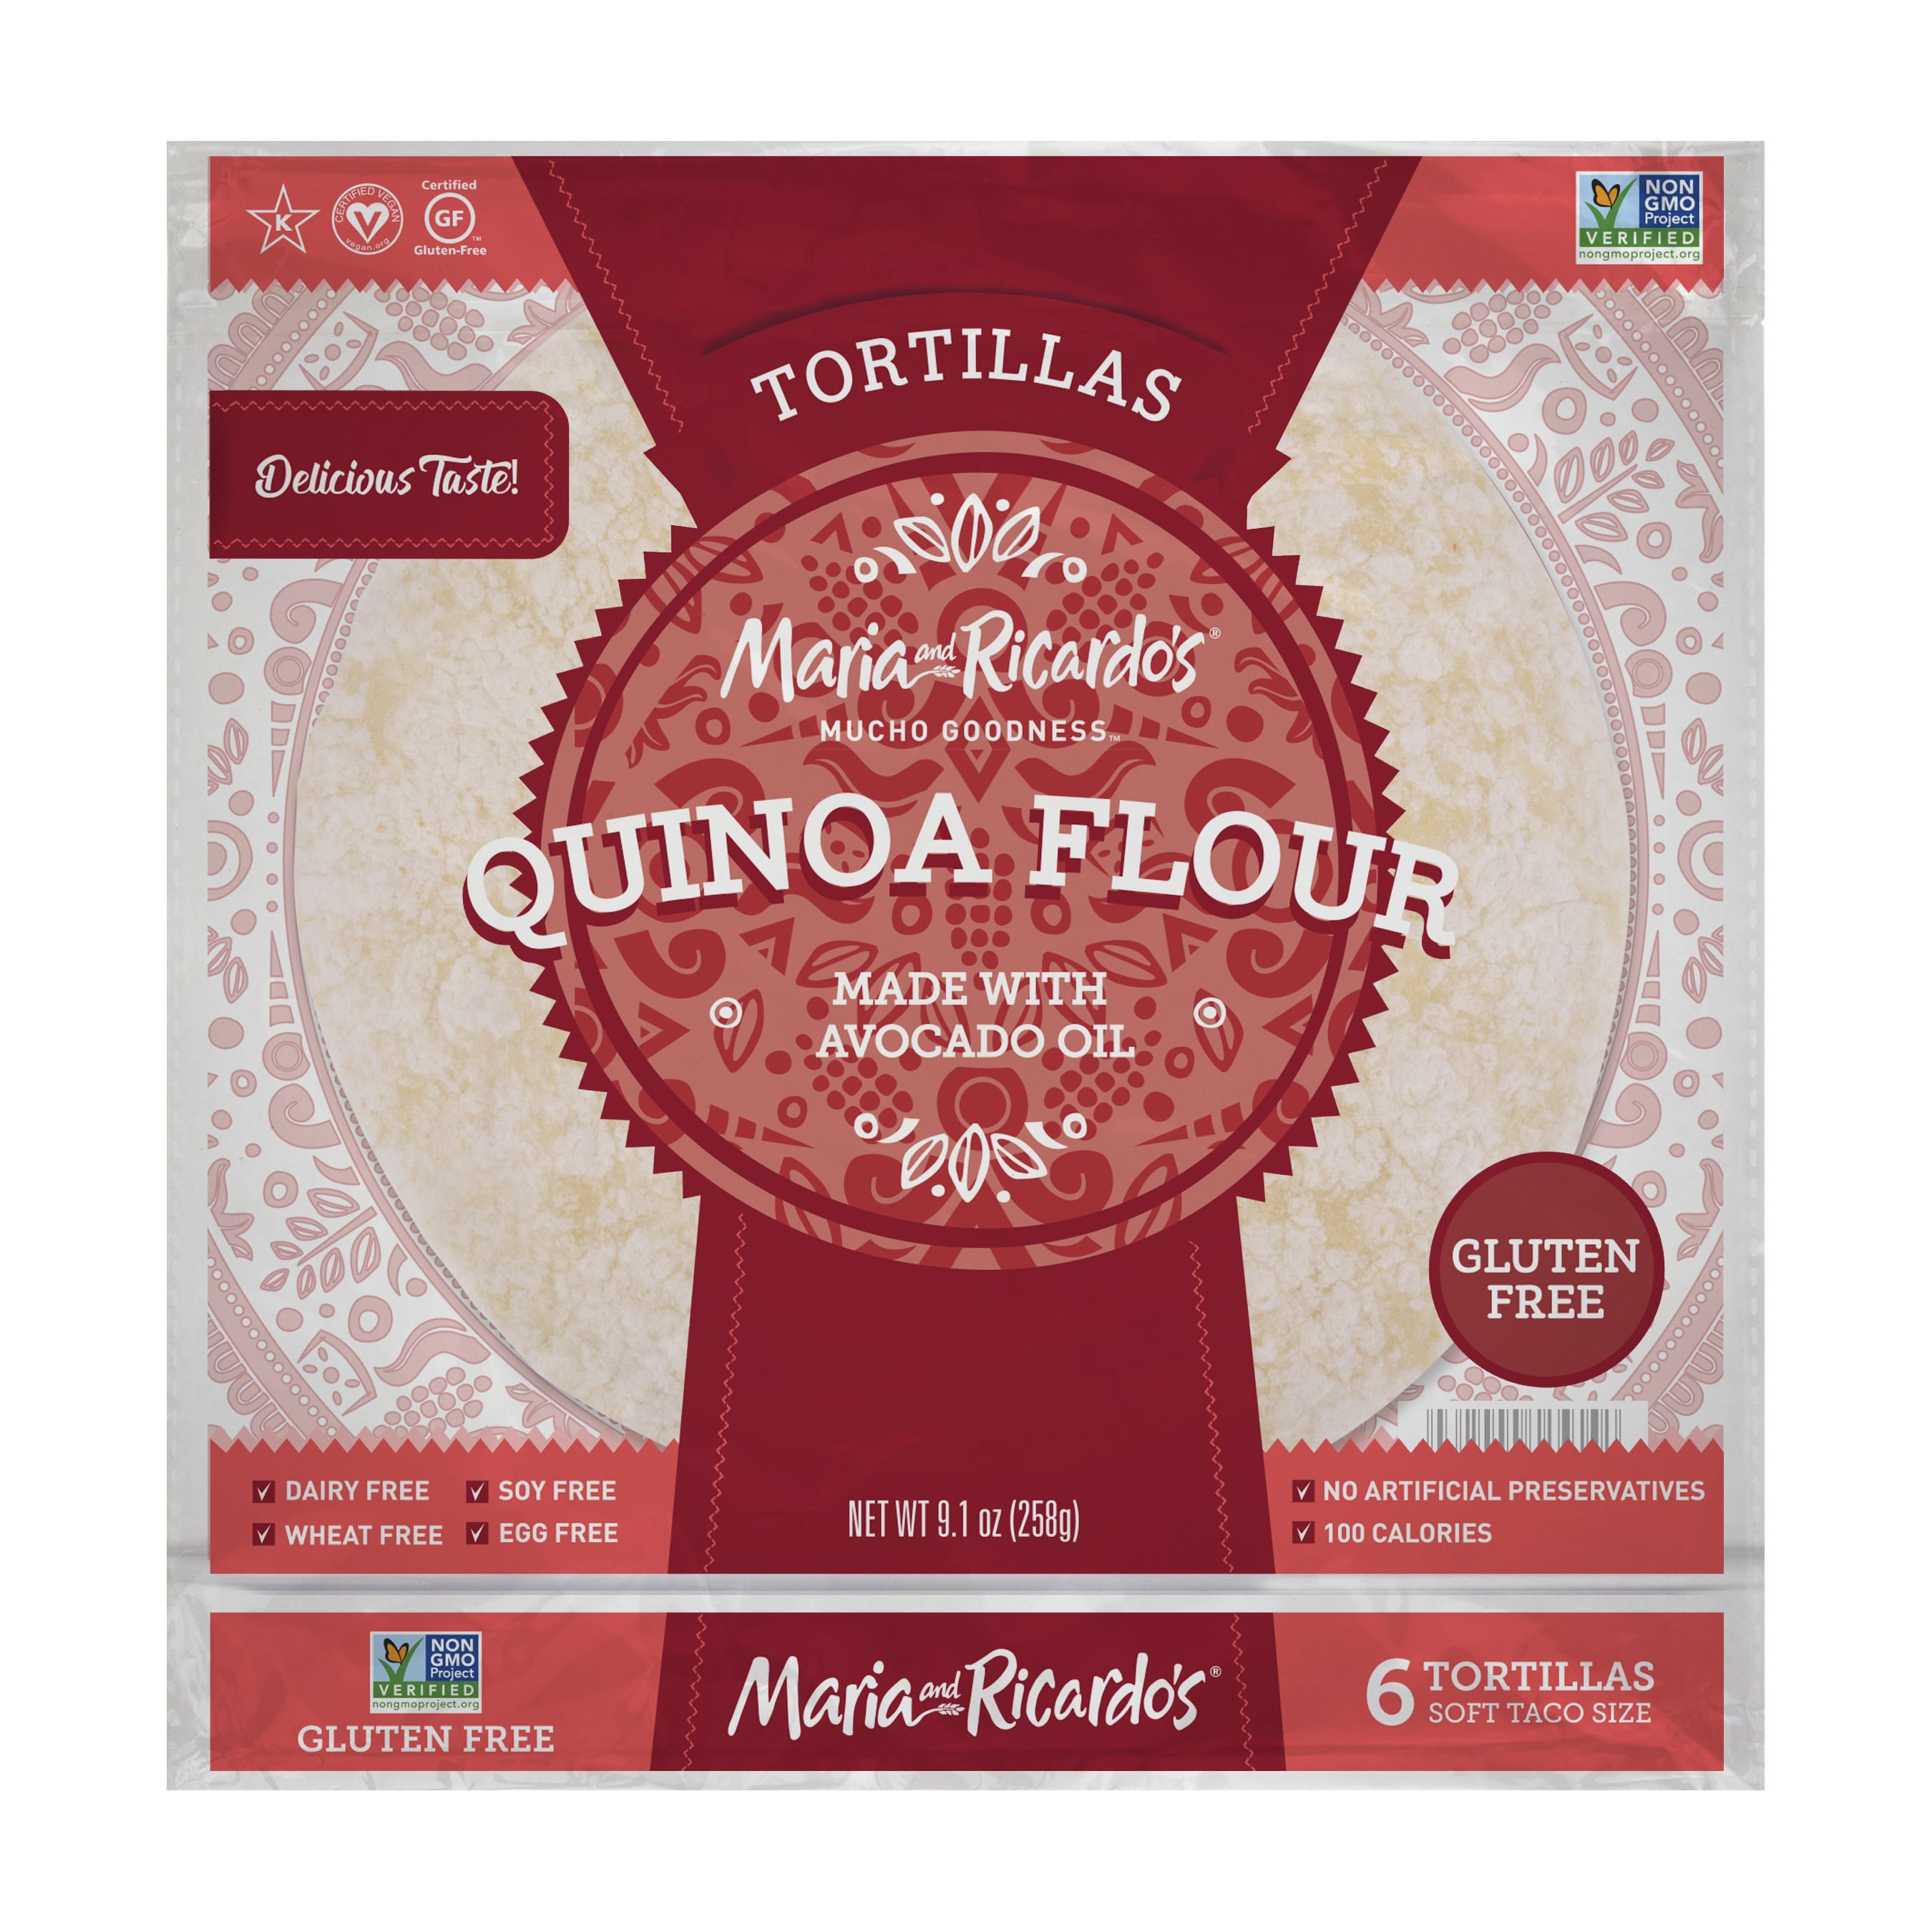 Maria and Ricardo's Launches Two New Tortillas Nationwide